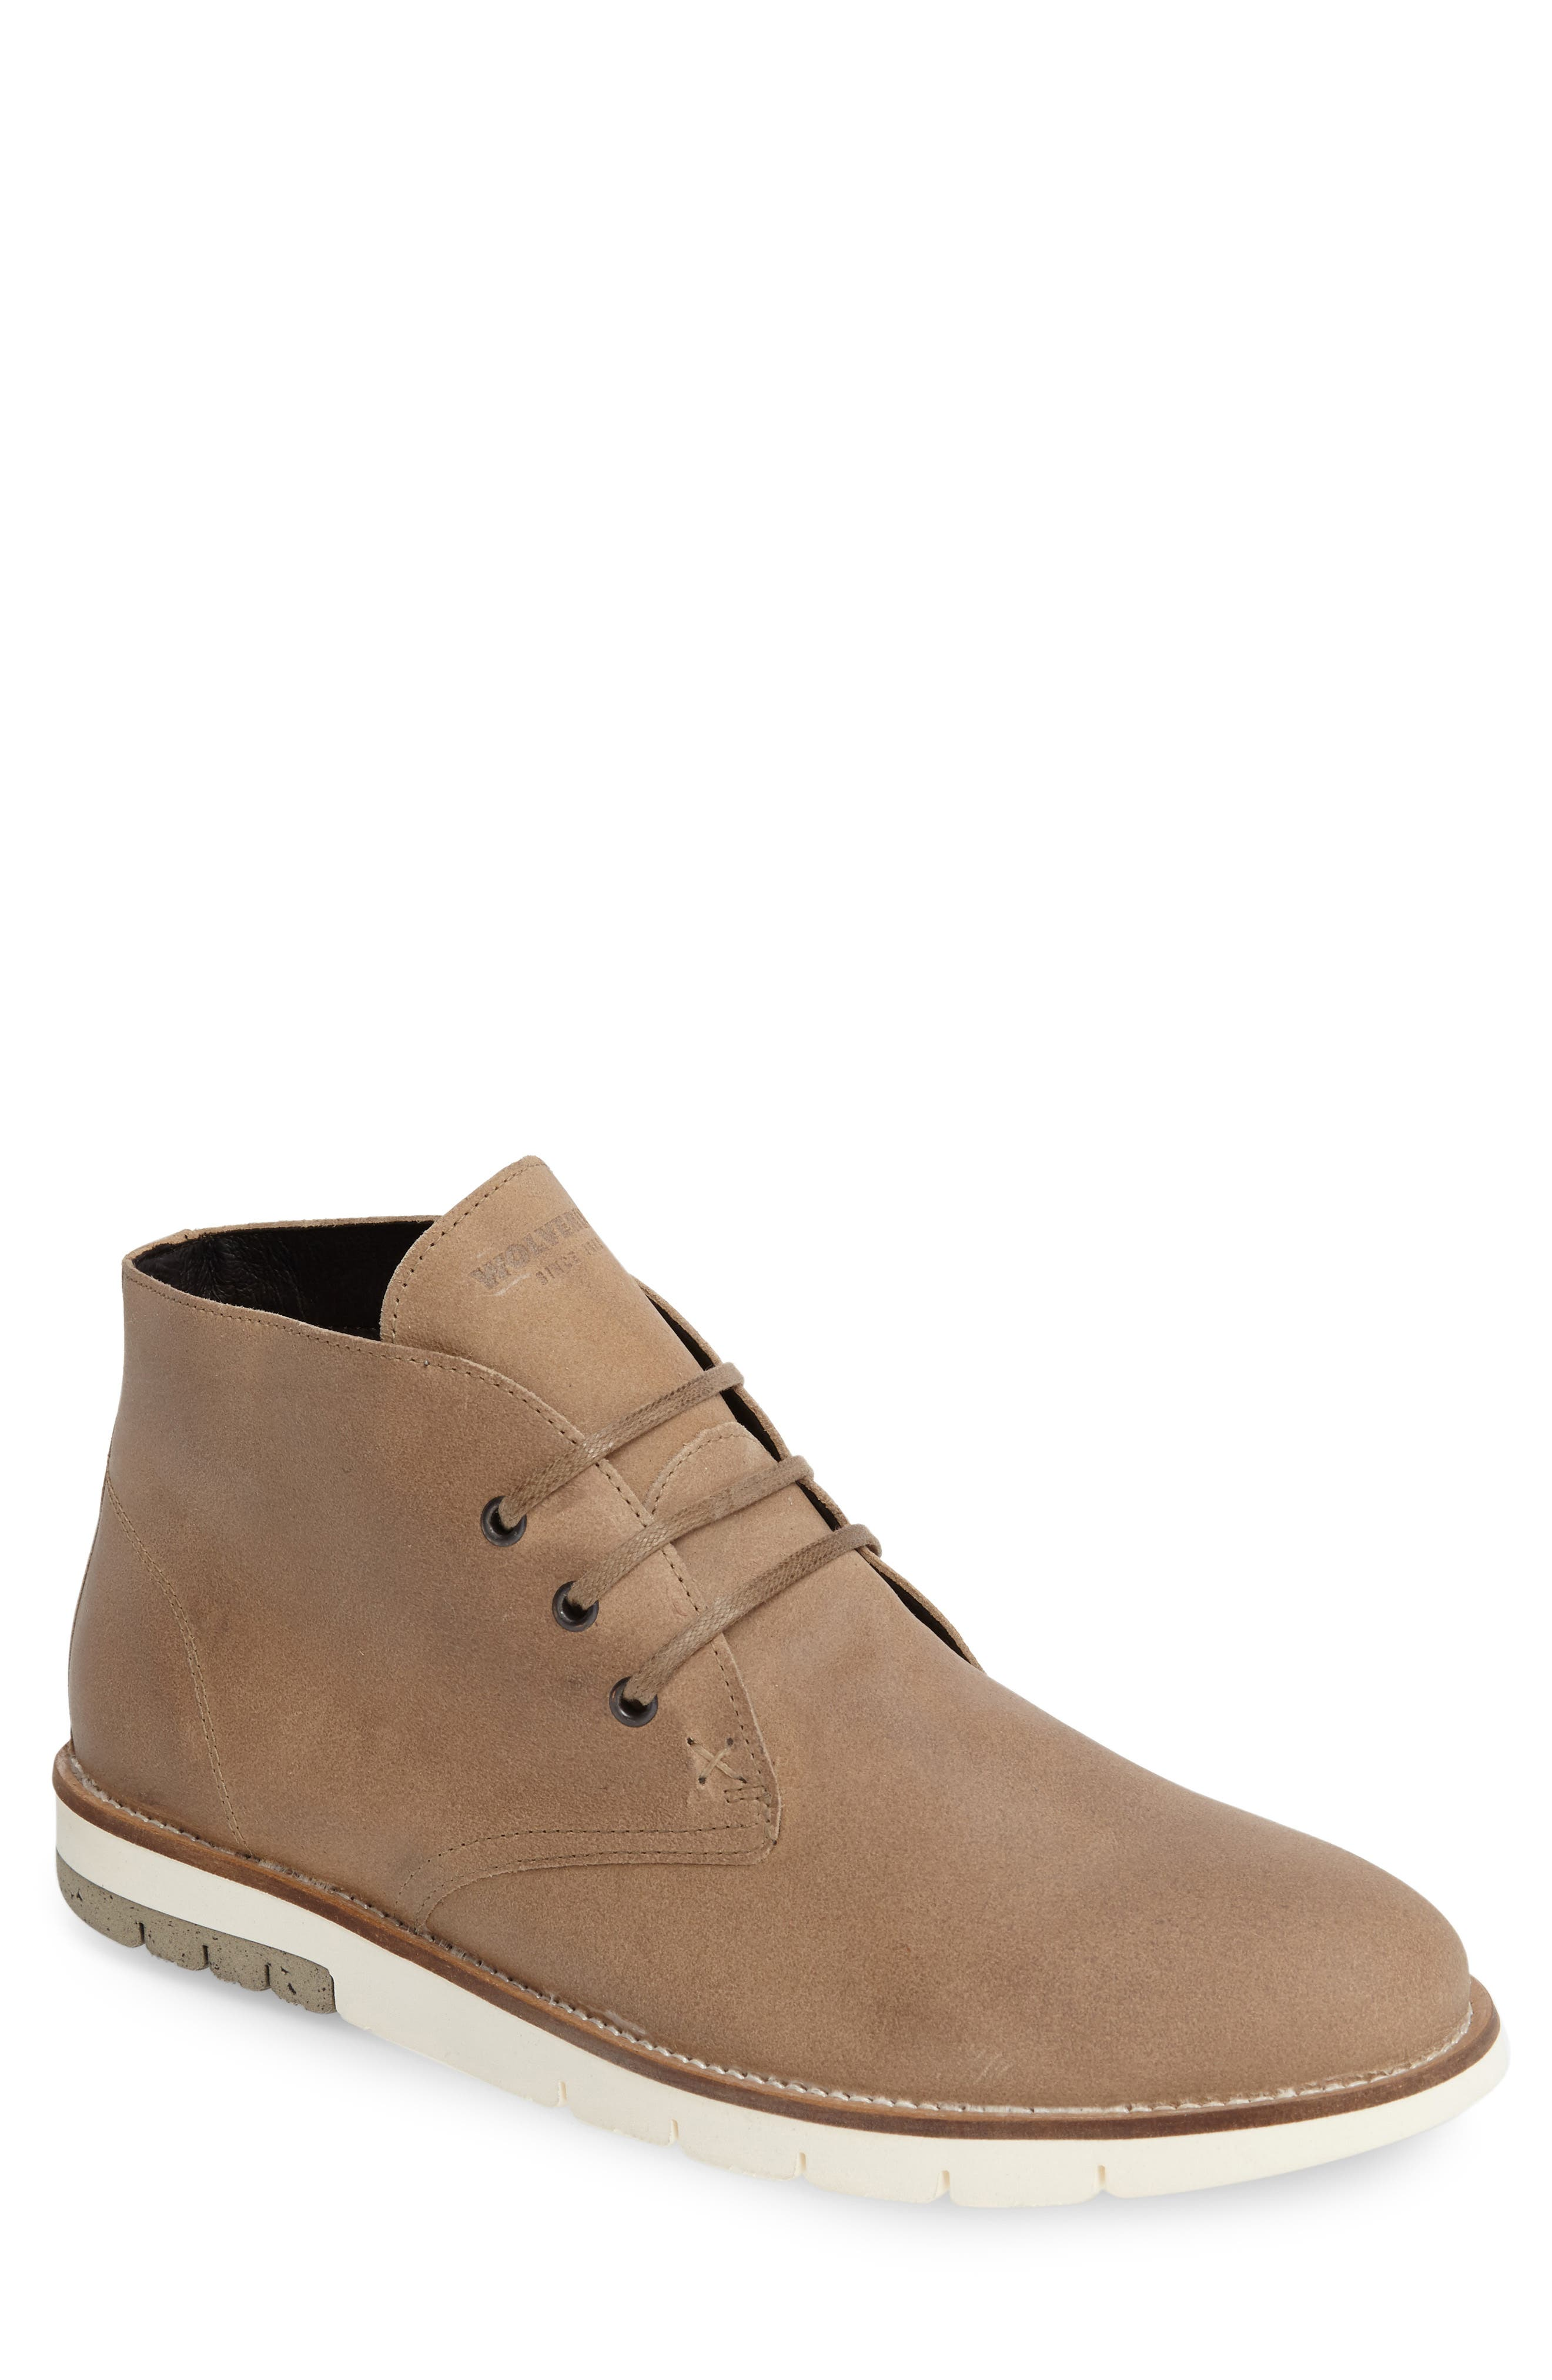 Gibson Chukka Boot,                             Main thumbnail 1, color,                             200